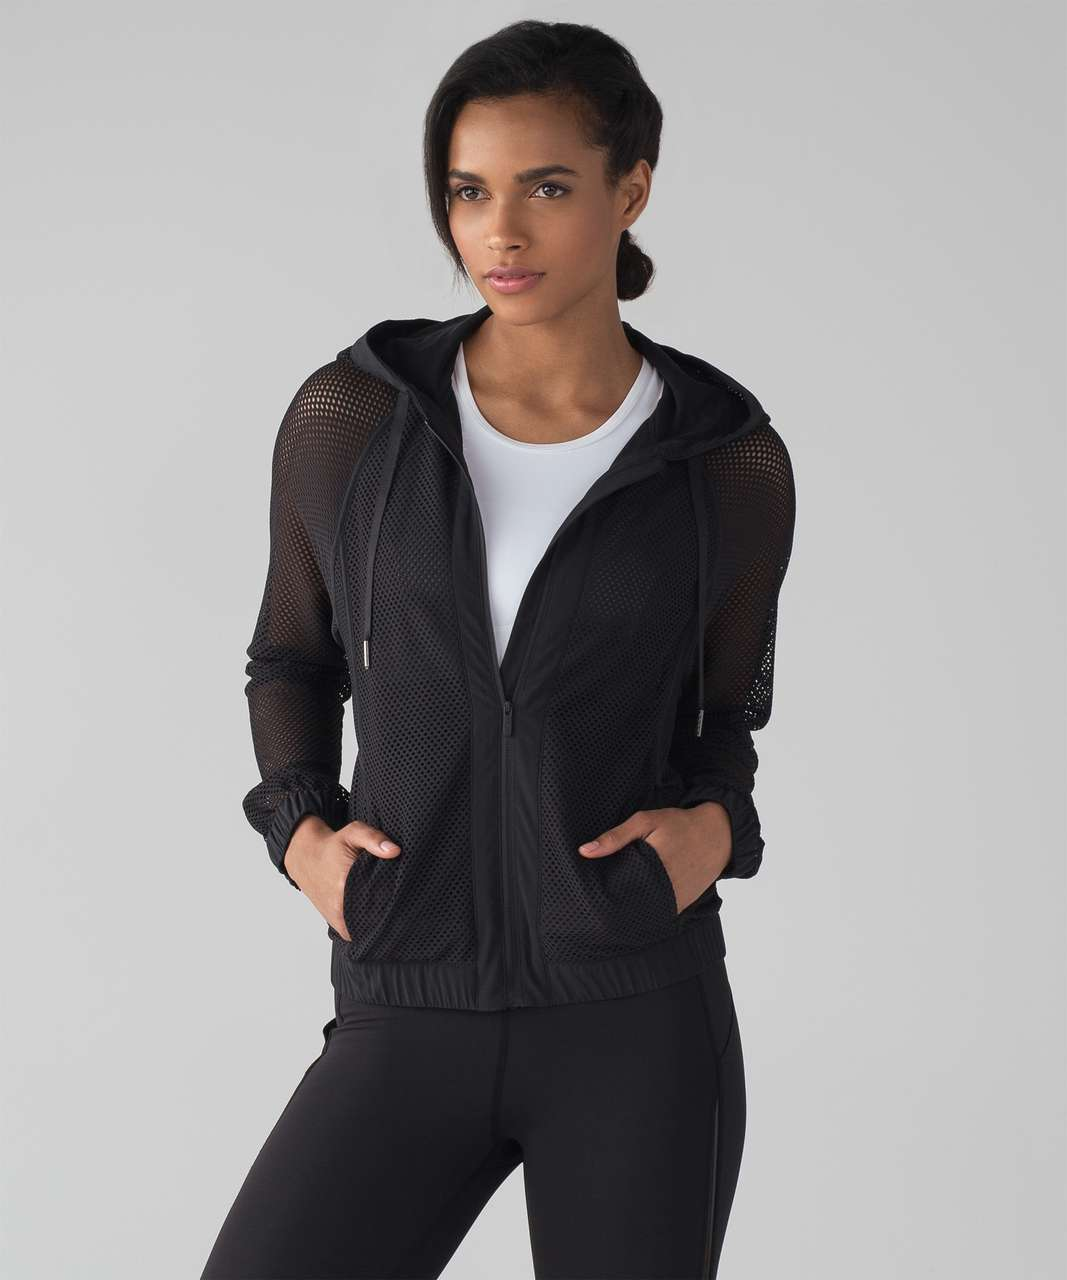 Lululemon Mesh on Mesh Jacket - Black